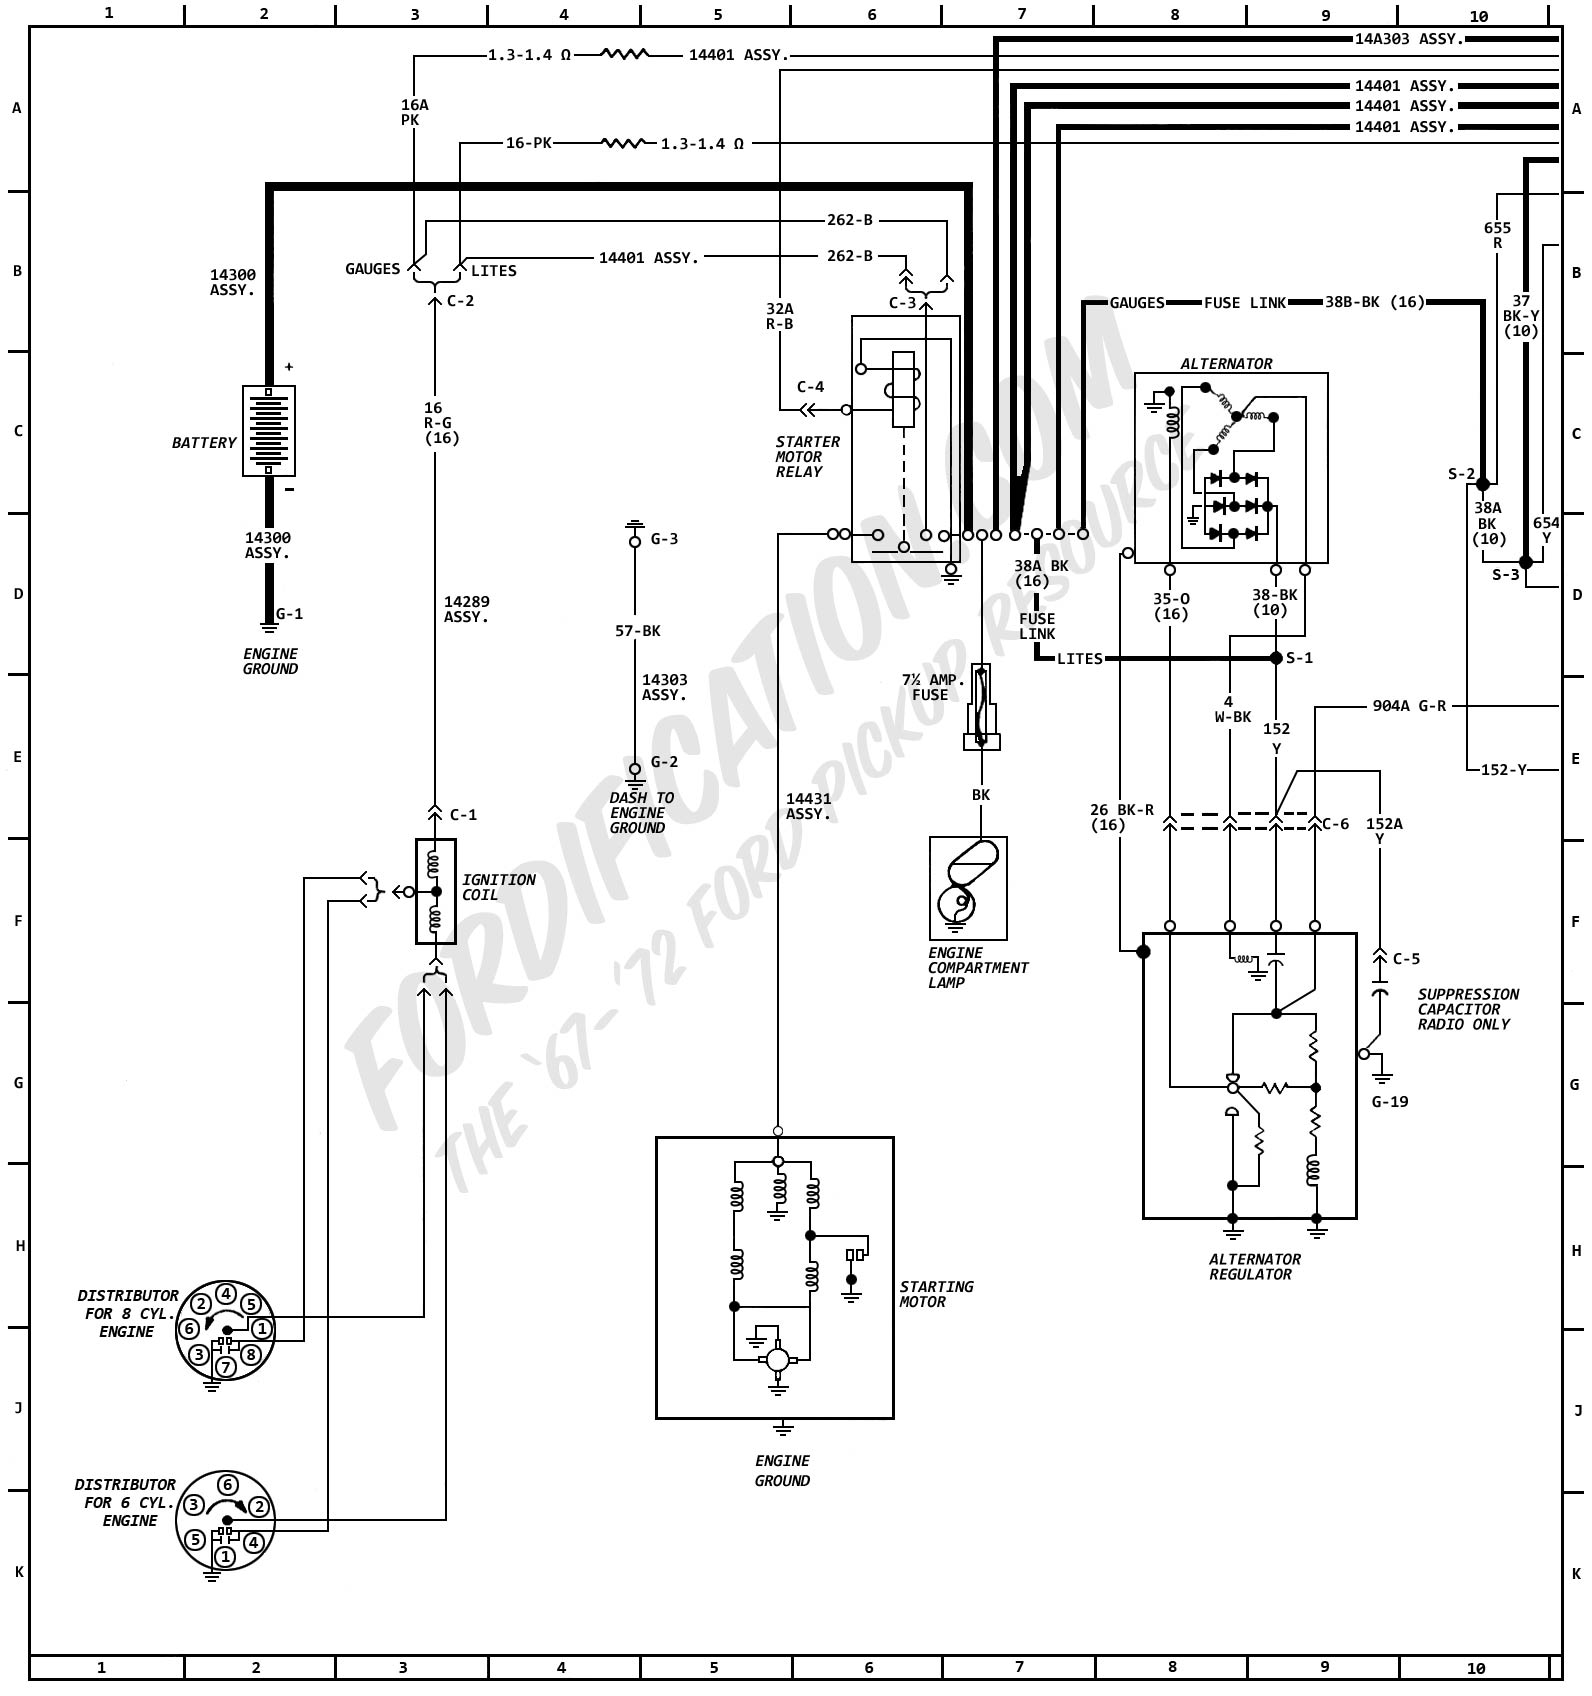 1972MasterWiring_01 1972 ford truck wiring diagrams fordification com 1973 ford f100 wiring diagram at bayanpartner.co